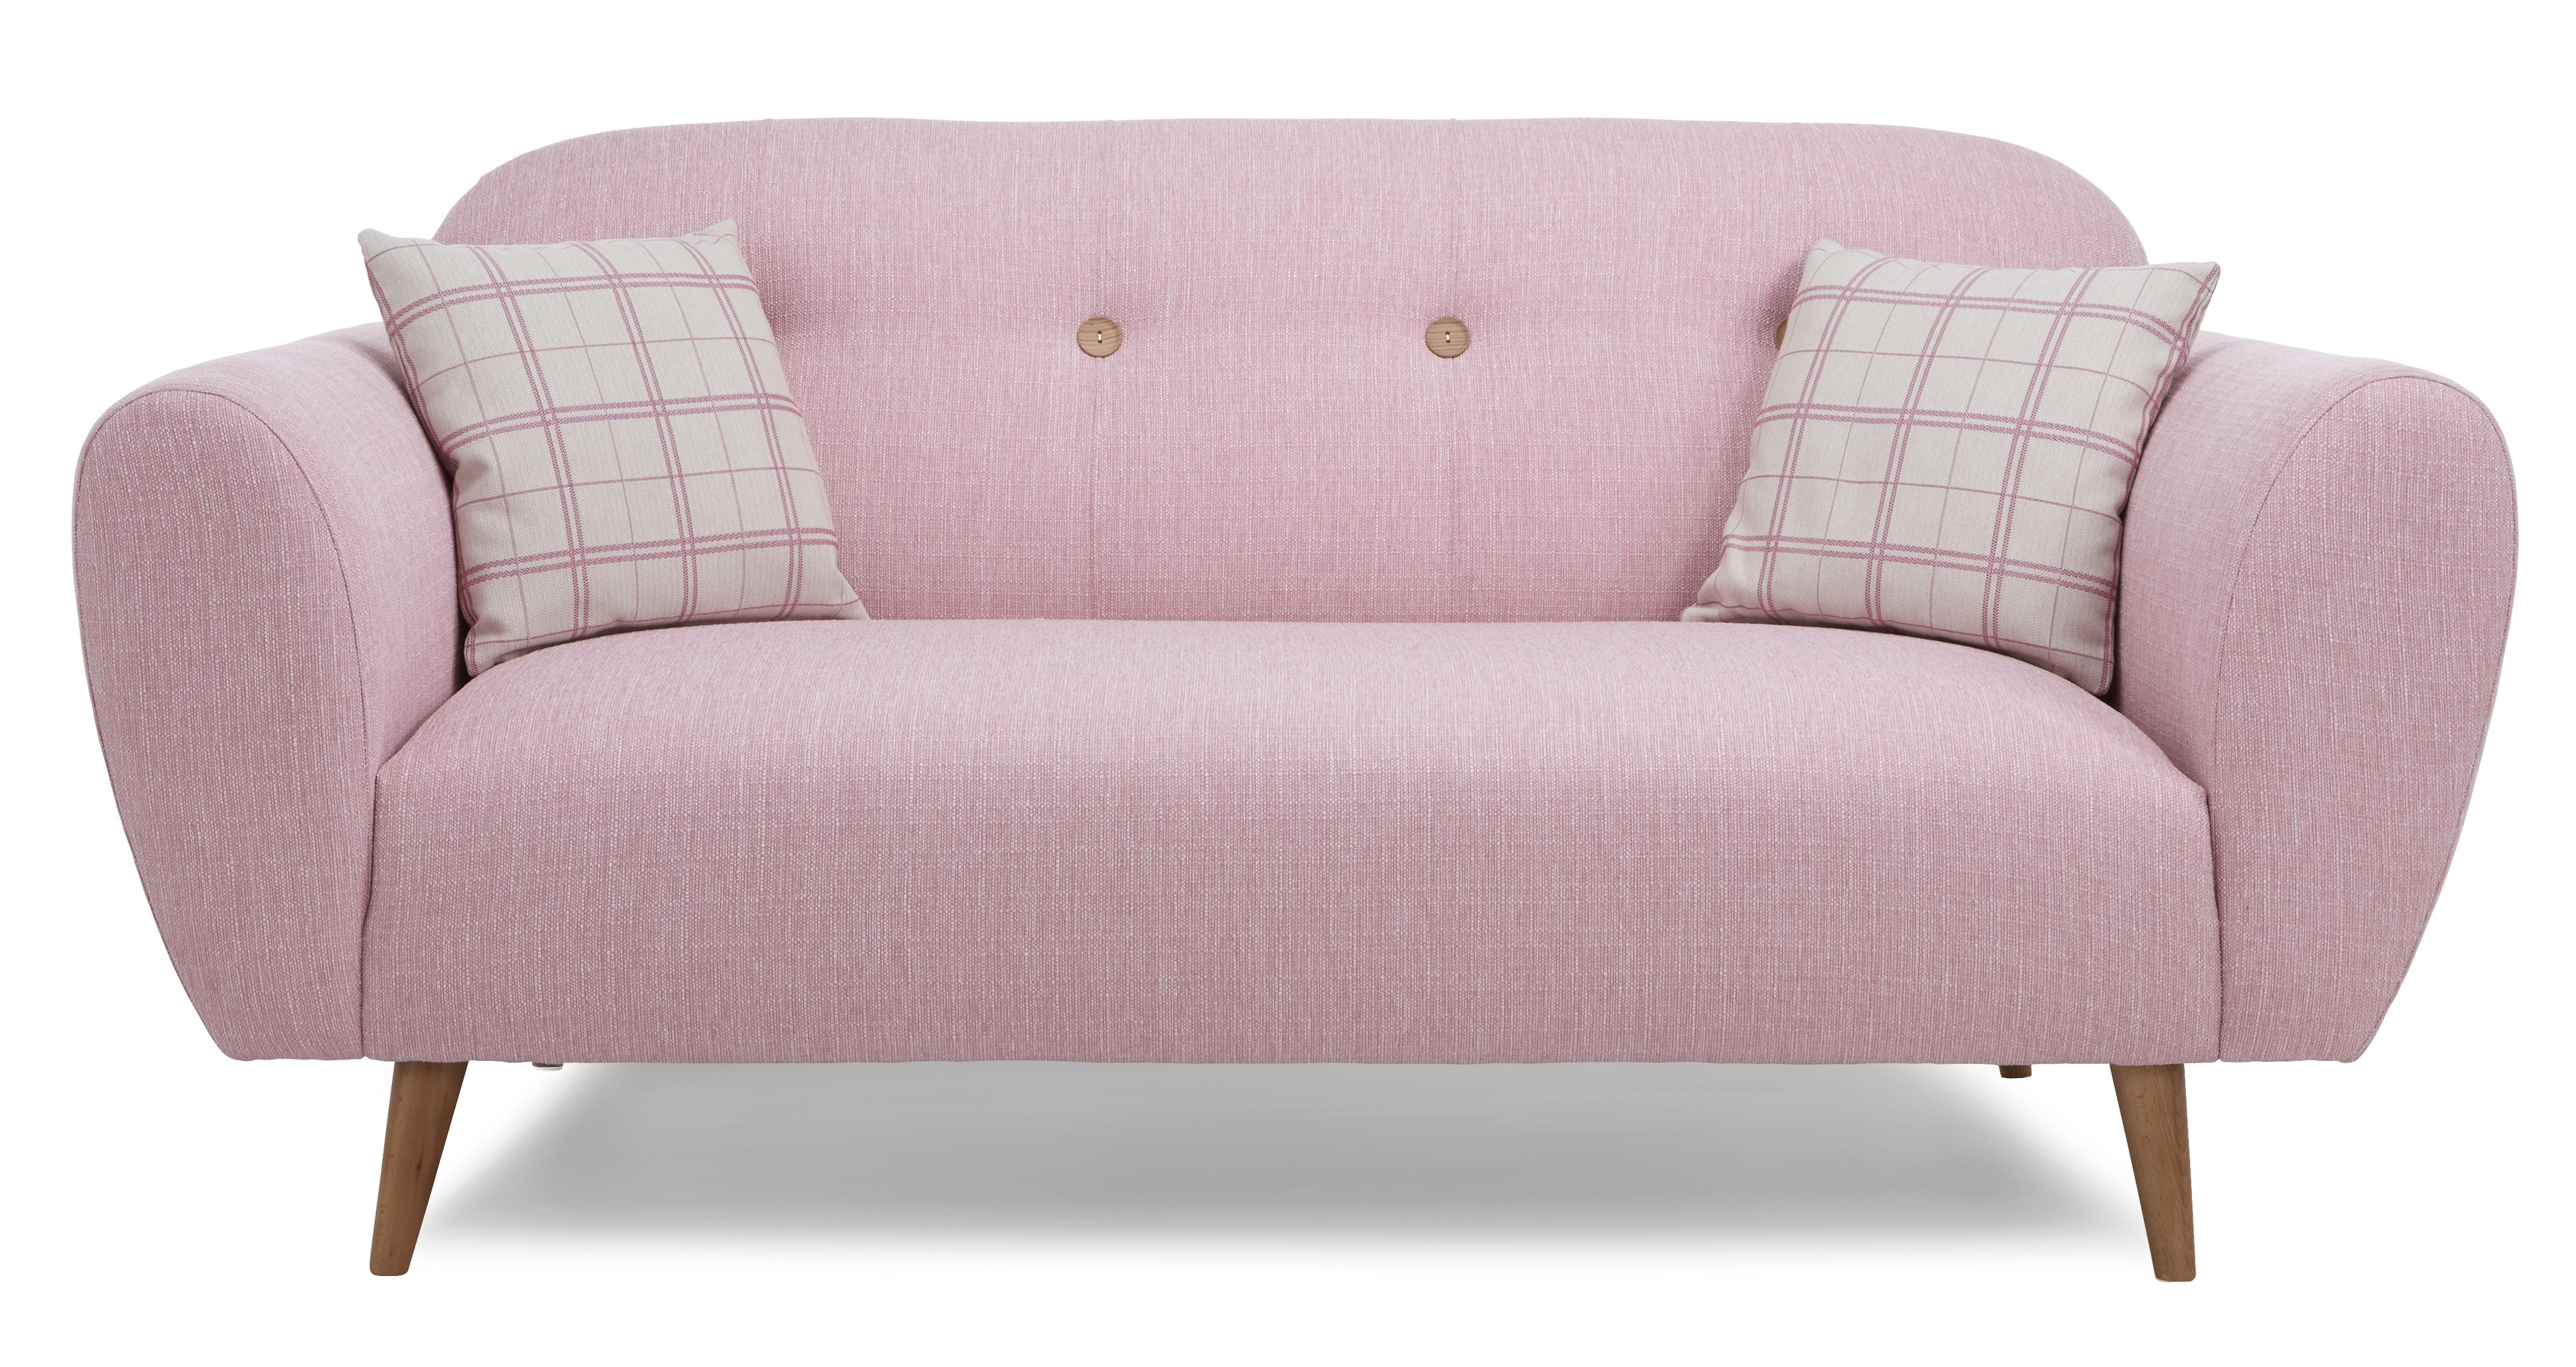 Betsy 2 seater sofa dfs ireland for 2 seater sofa